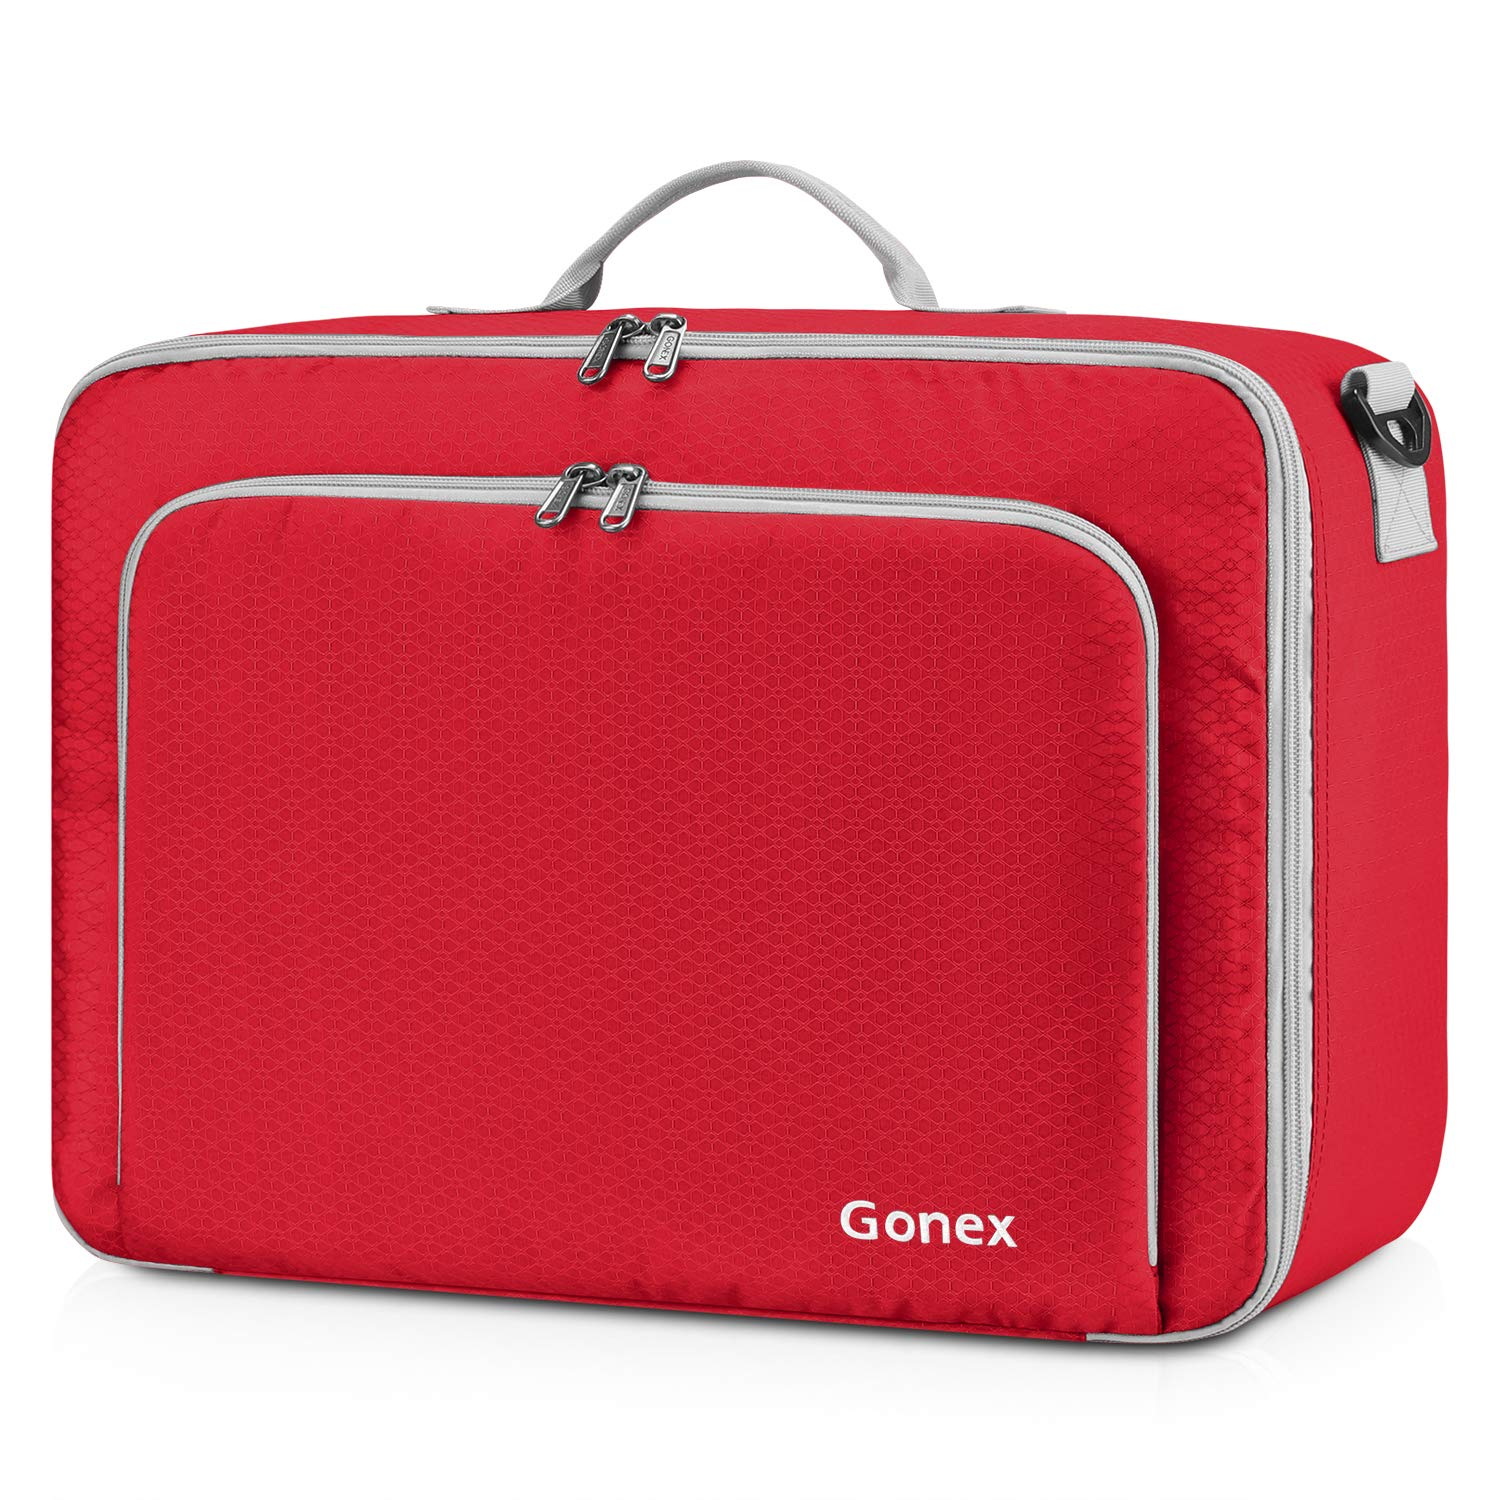 Gonex Travel Duffel Bag, Portable Carry on Luggage Personal Item Bag for Airlines, Water& Tear-Resistant 20L Red